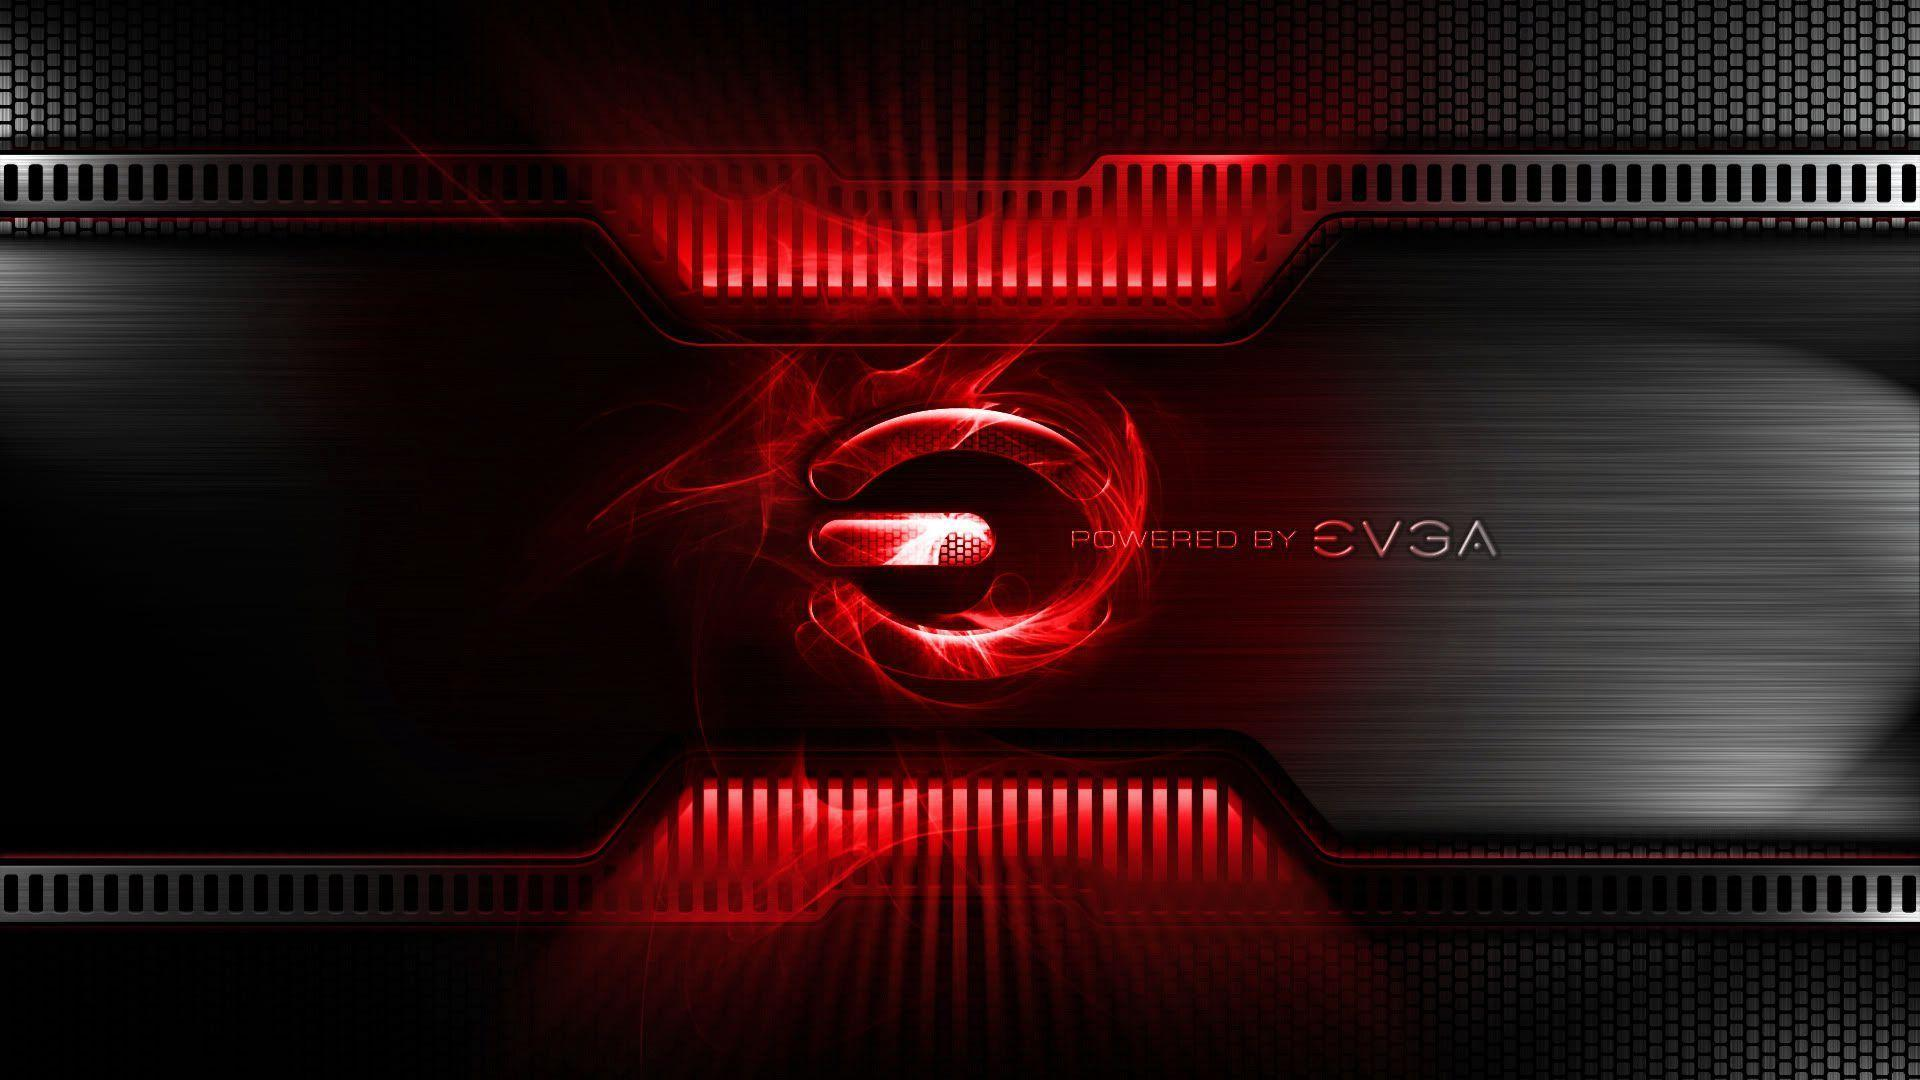 nvidia wallpaper 1080p red - photo #33